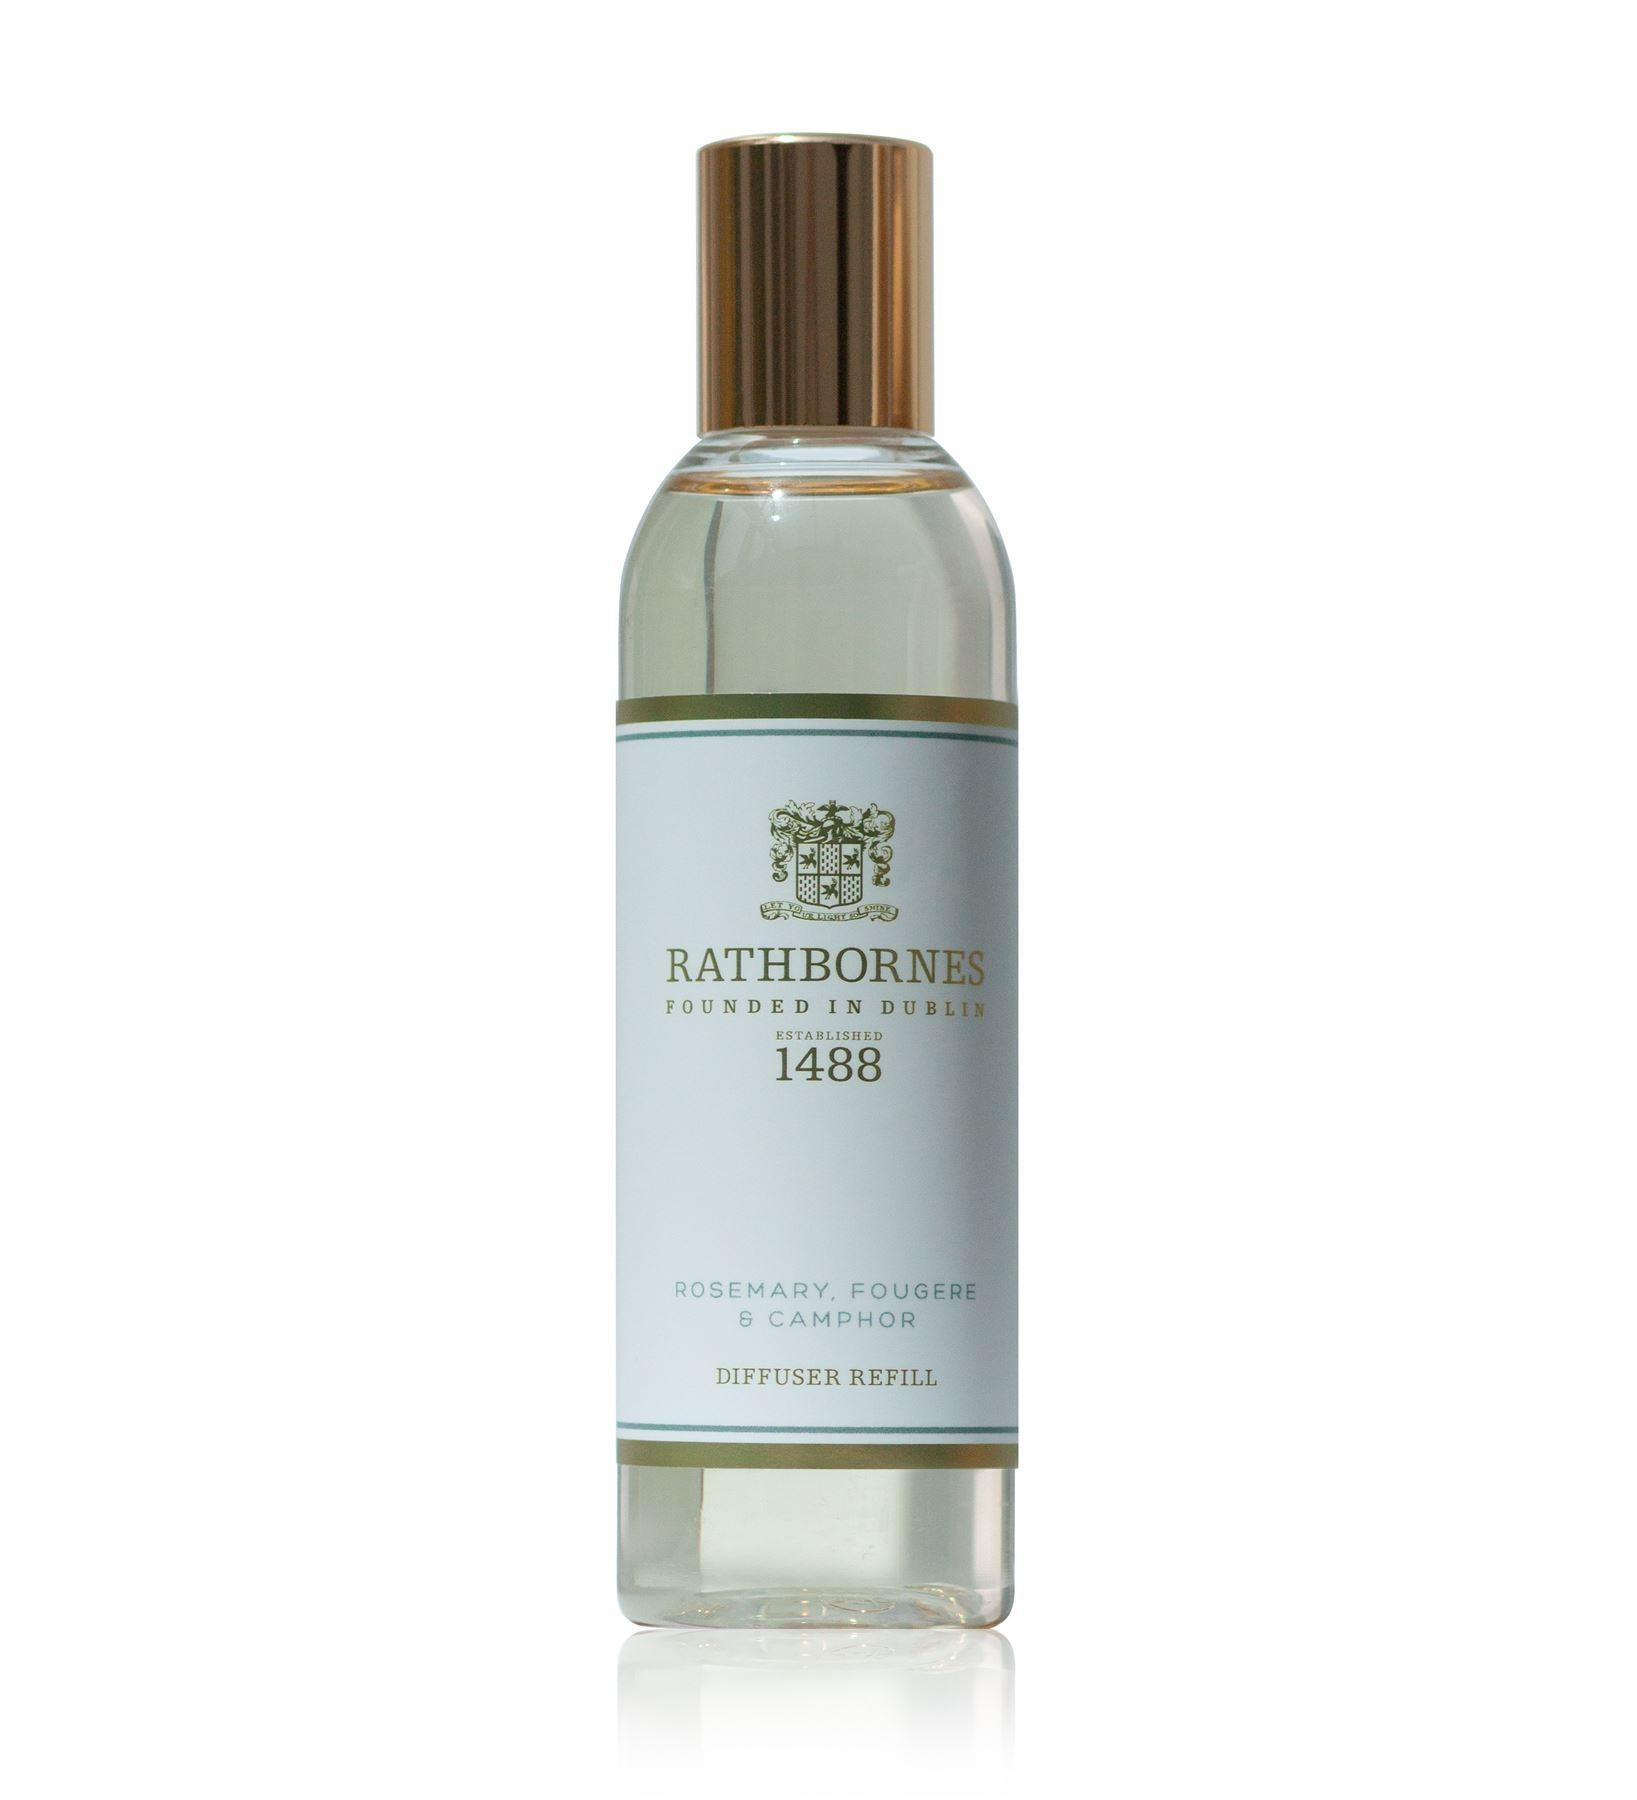 Rathbornes 1488 Rosemary, Fougere & Camphor Scented Reed Diffuser Refill Oil